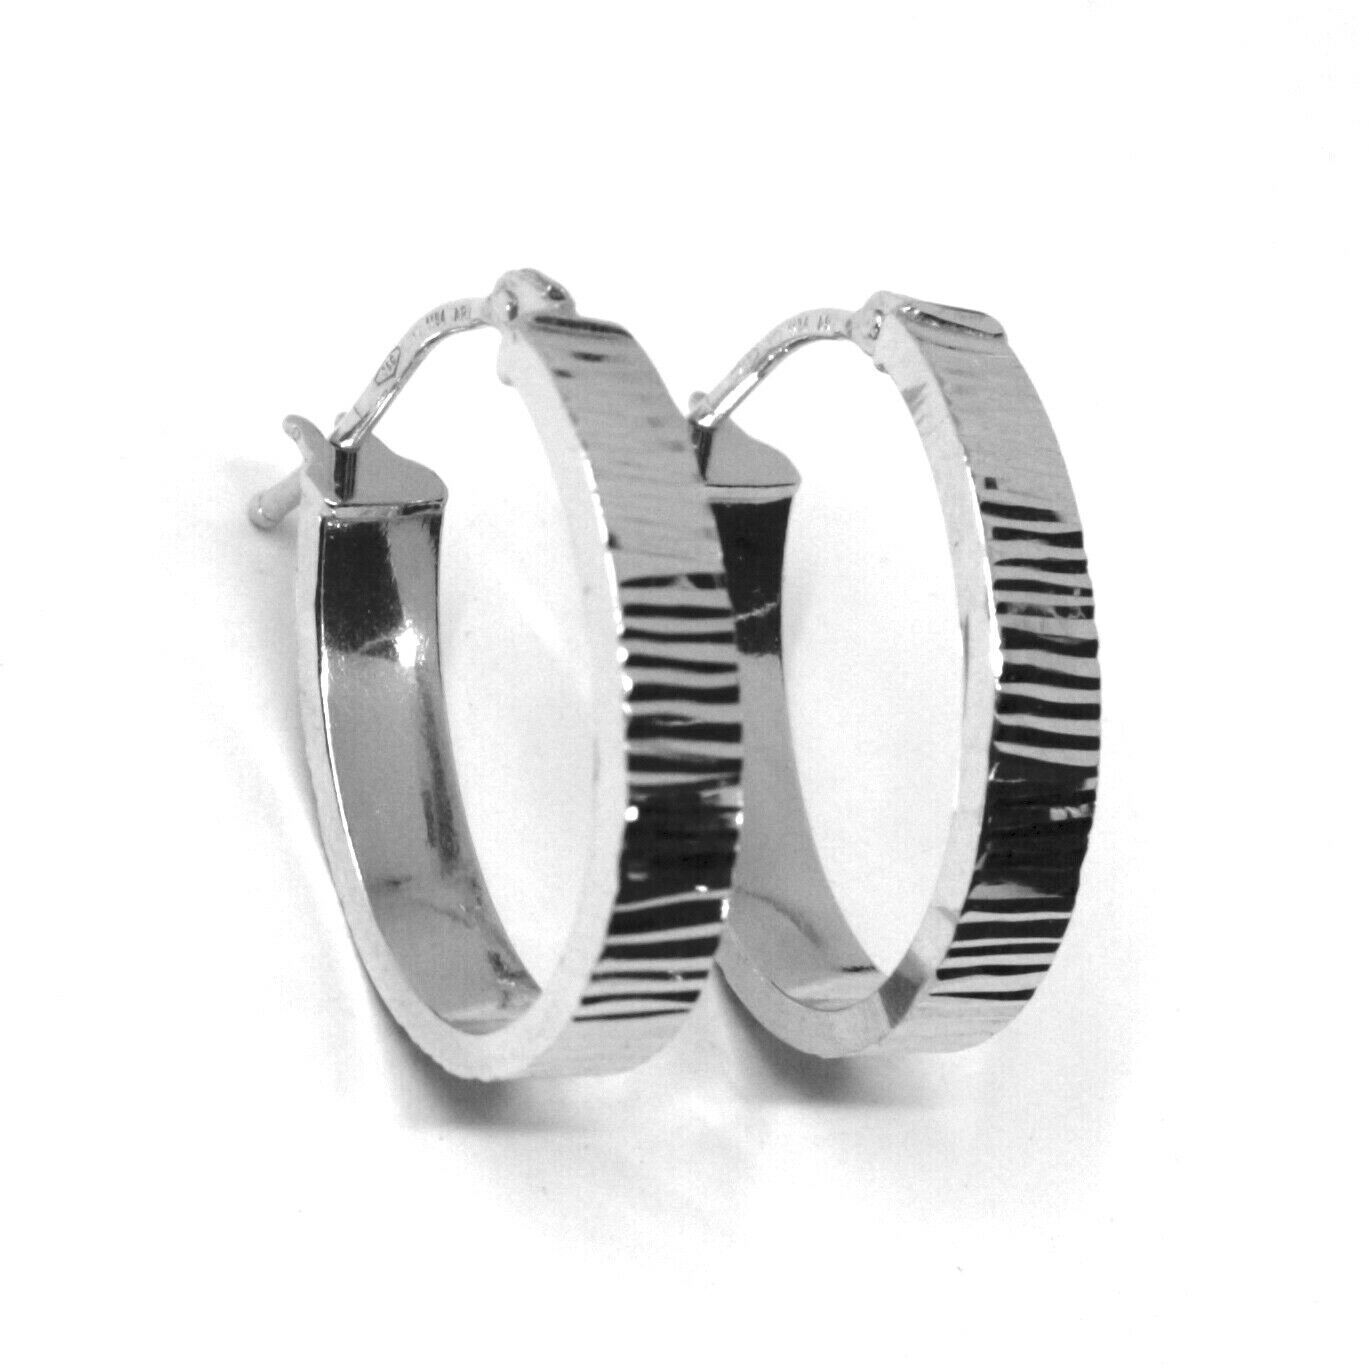 18K WHITE GOLD CIRCLE HOOPS OVAL SQUARED STRIPED WORKED EARRINGS 20 MM x 4 MM